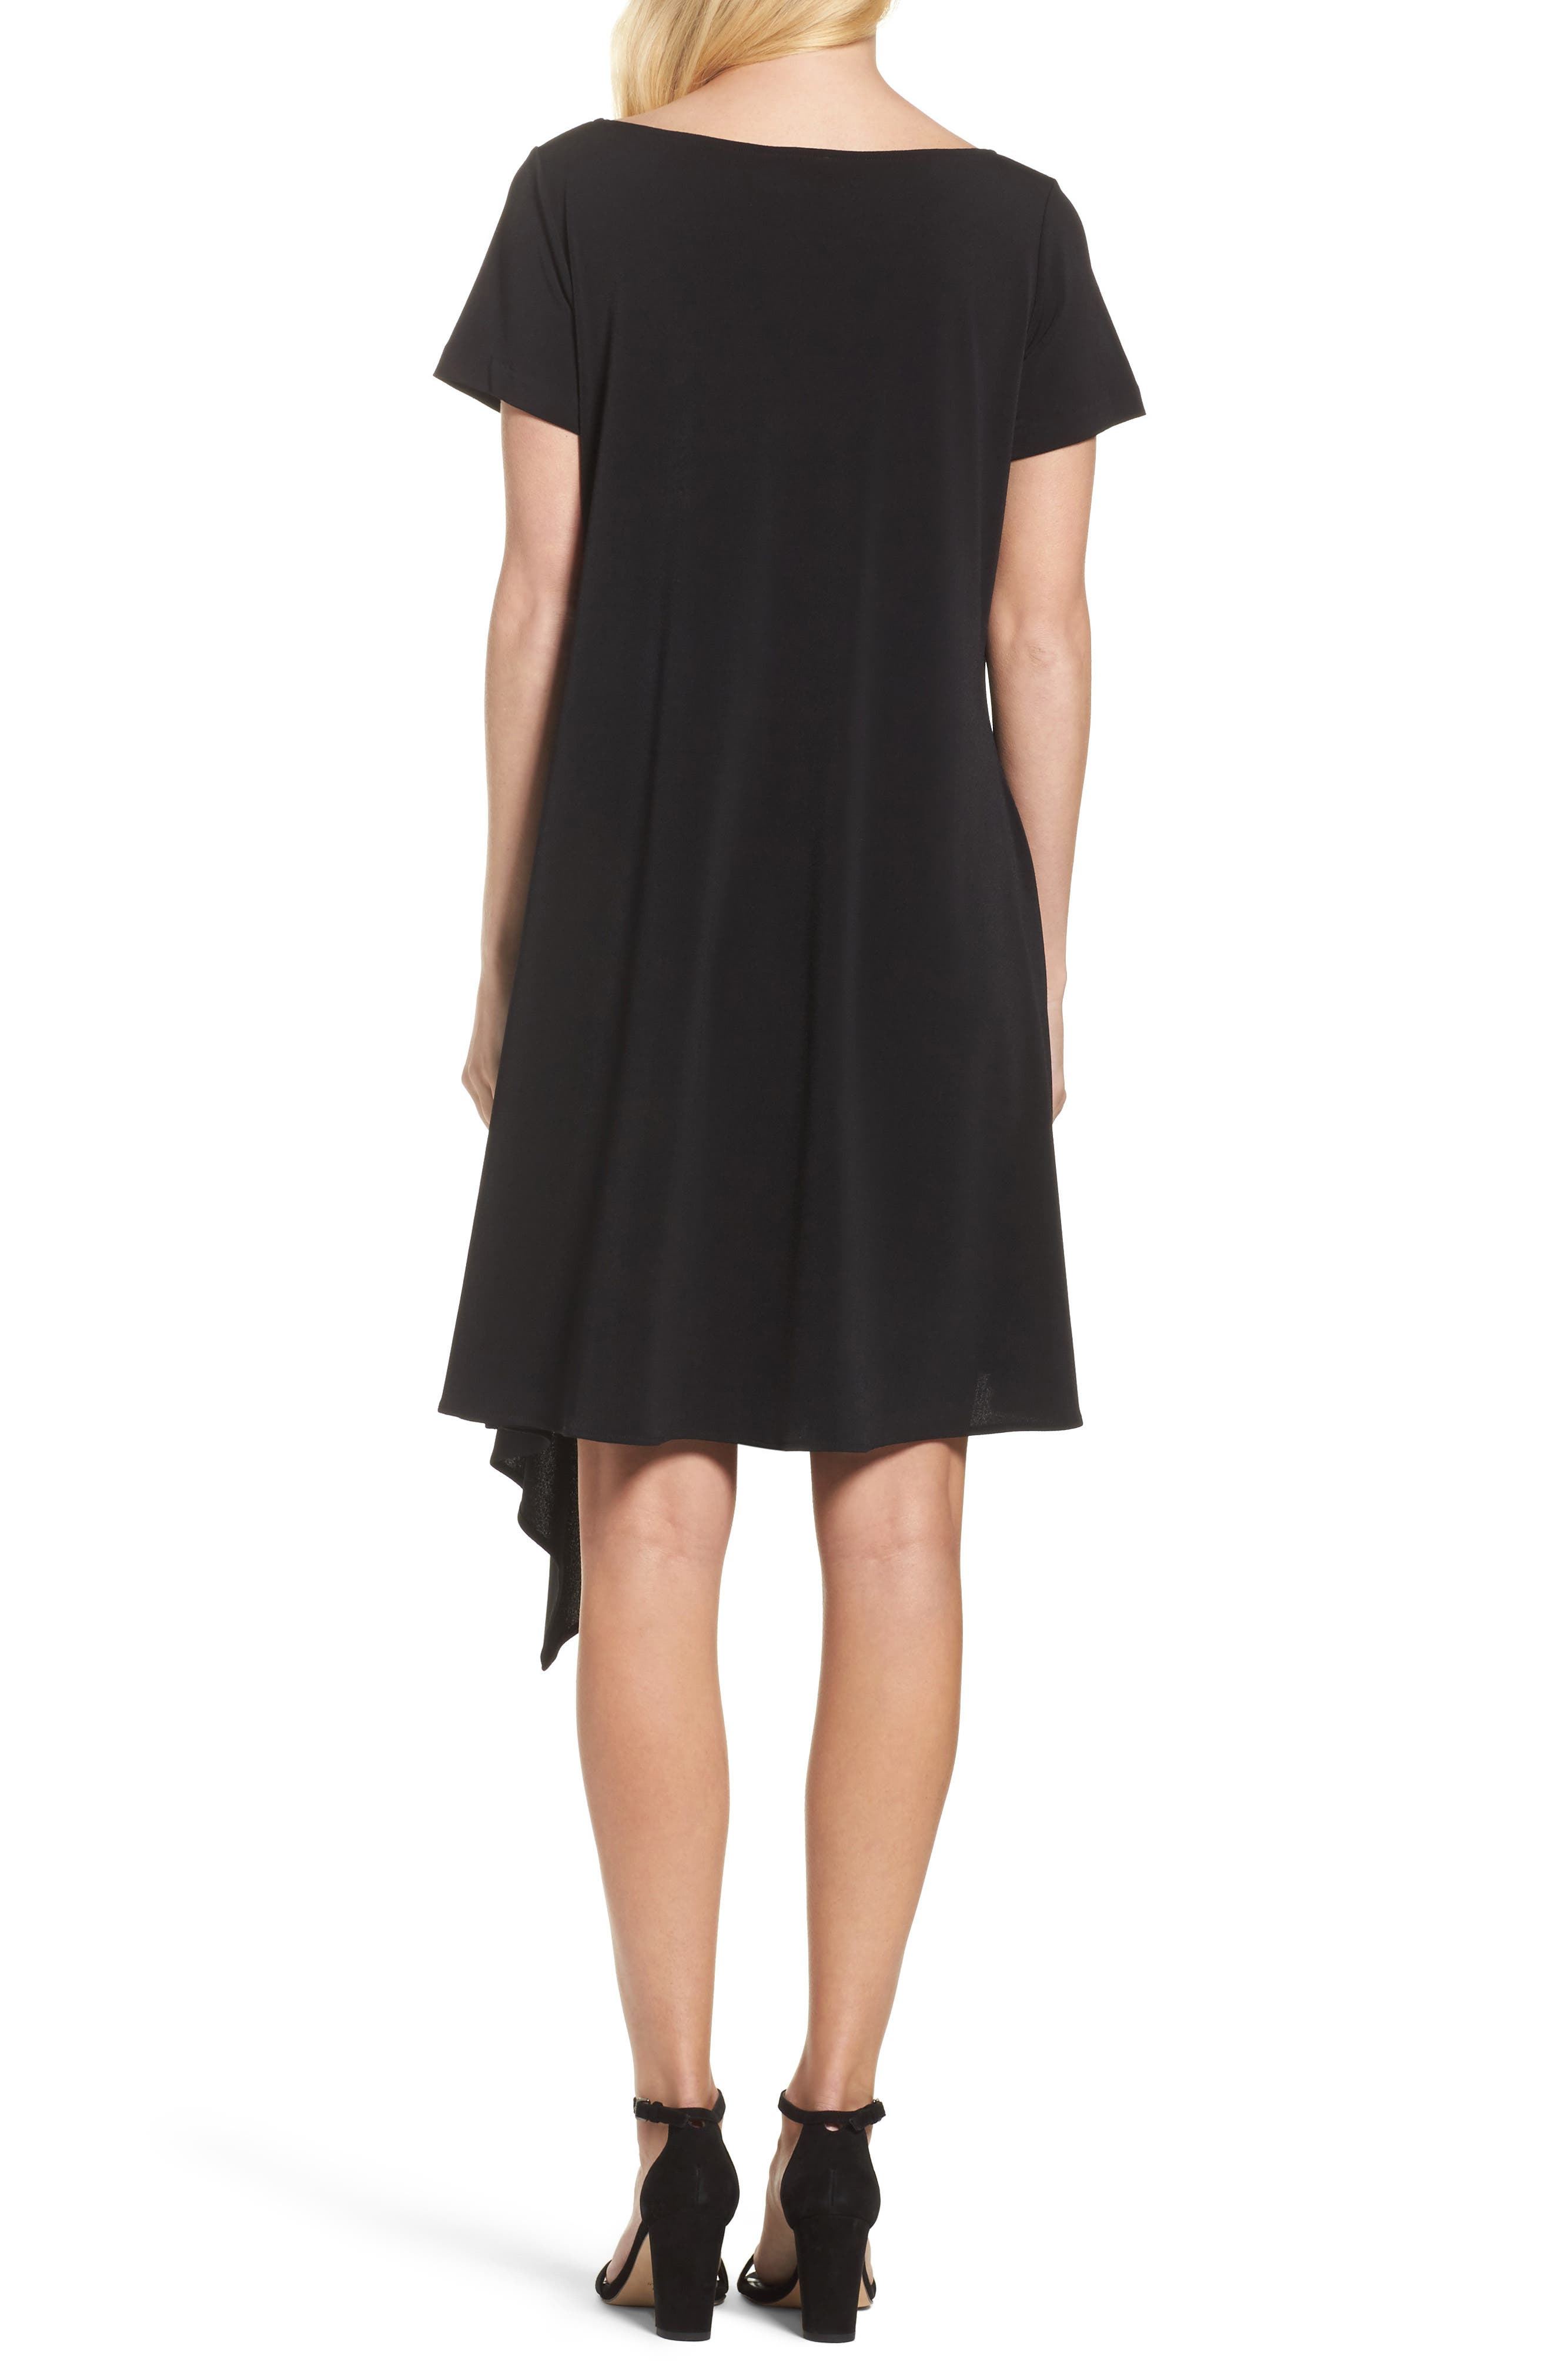 Darien Asymmetrical Dress,                             Alternate thumbnail 2, color,                             Black Crepe